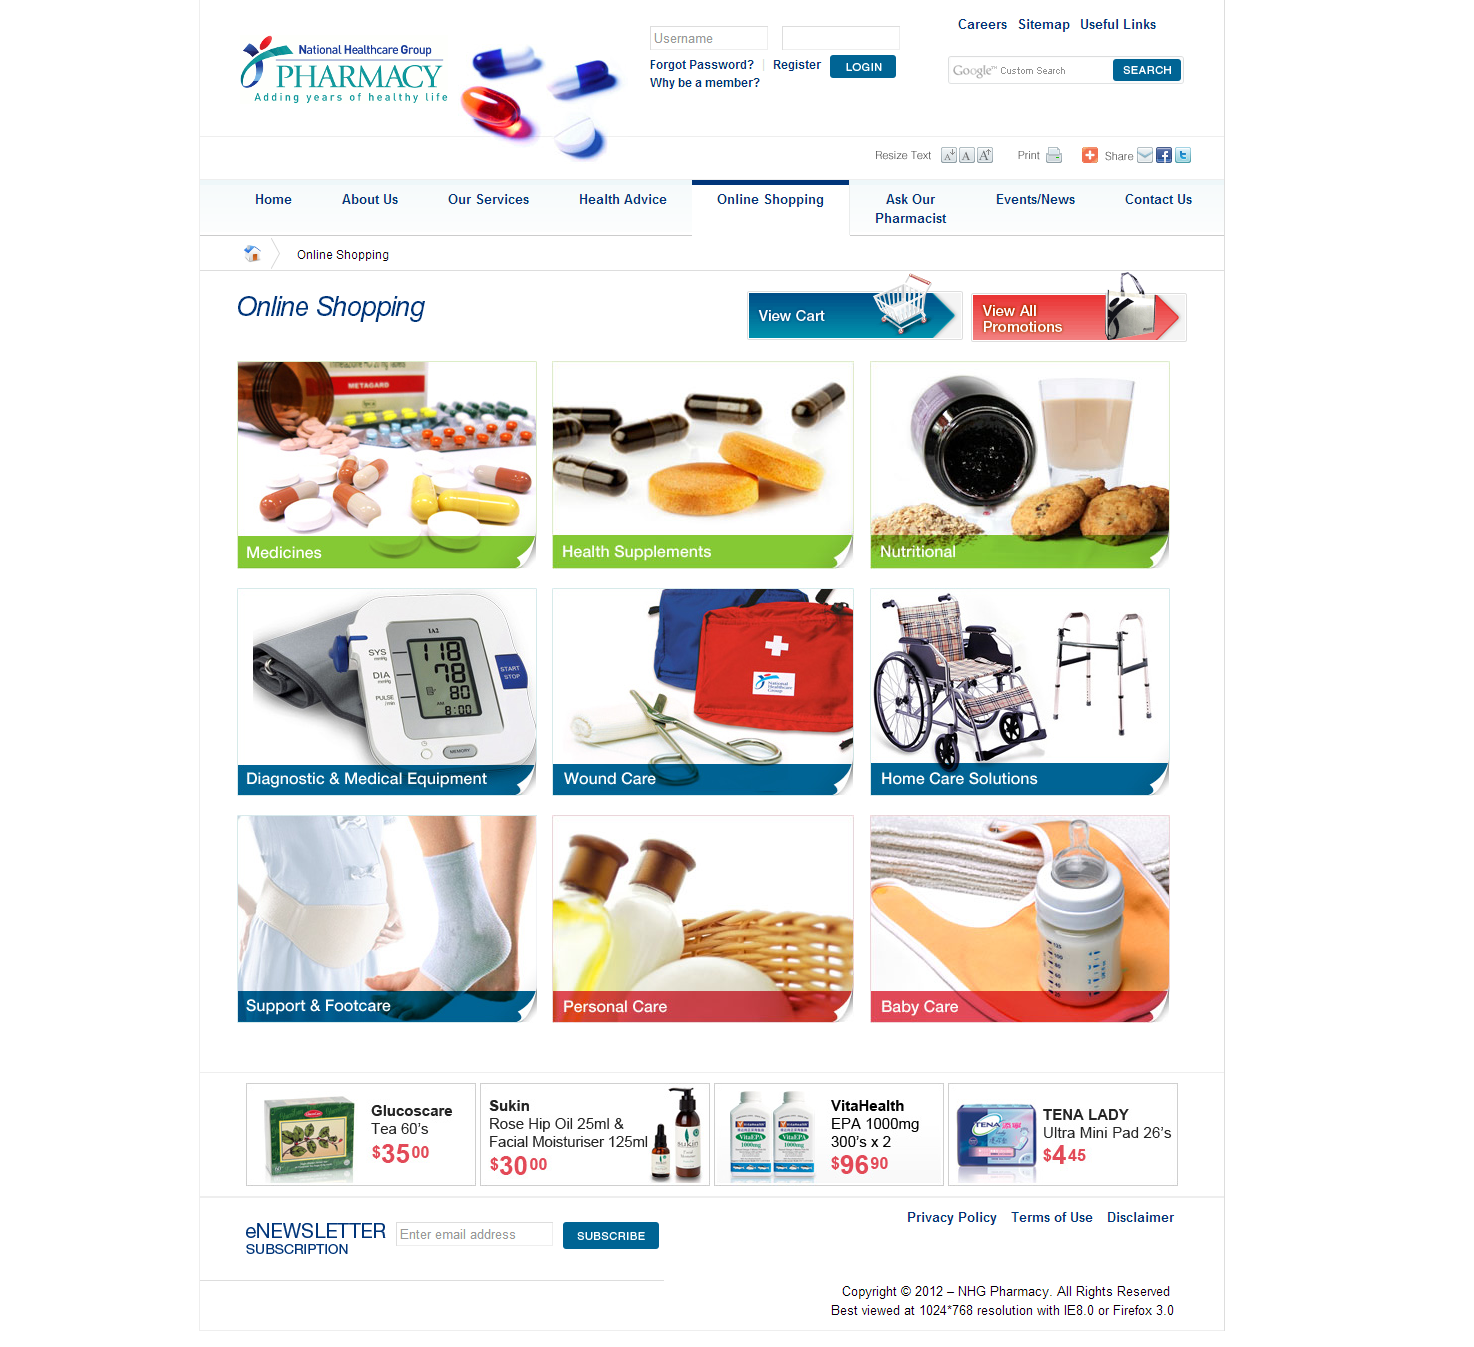 NHG Pharmacy Corporate and Ecommerce Portal Image 5